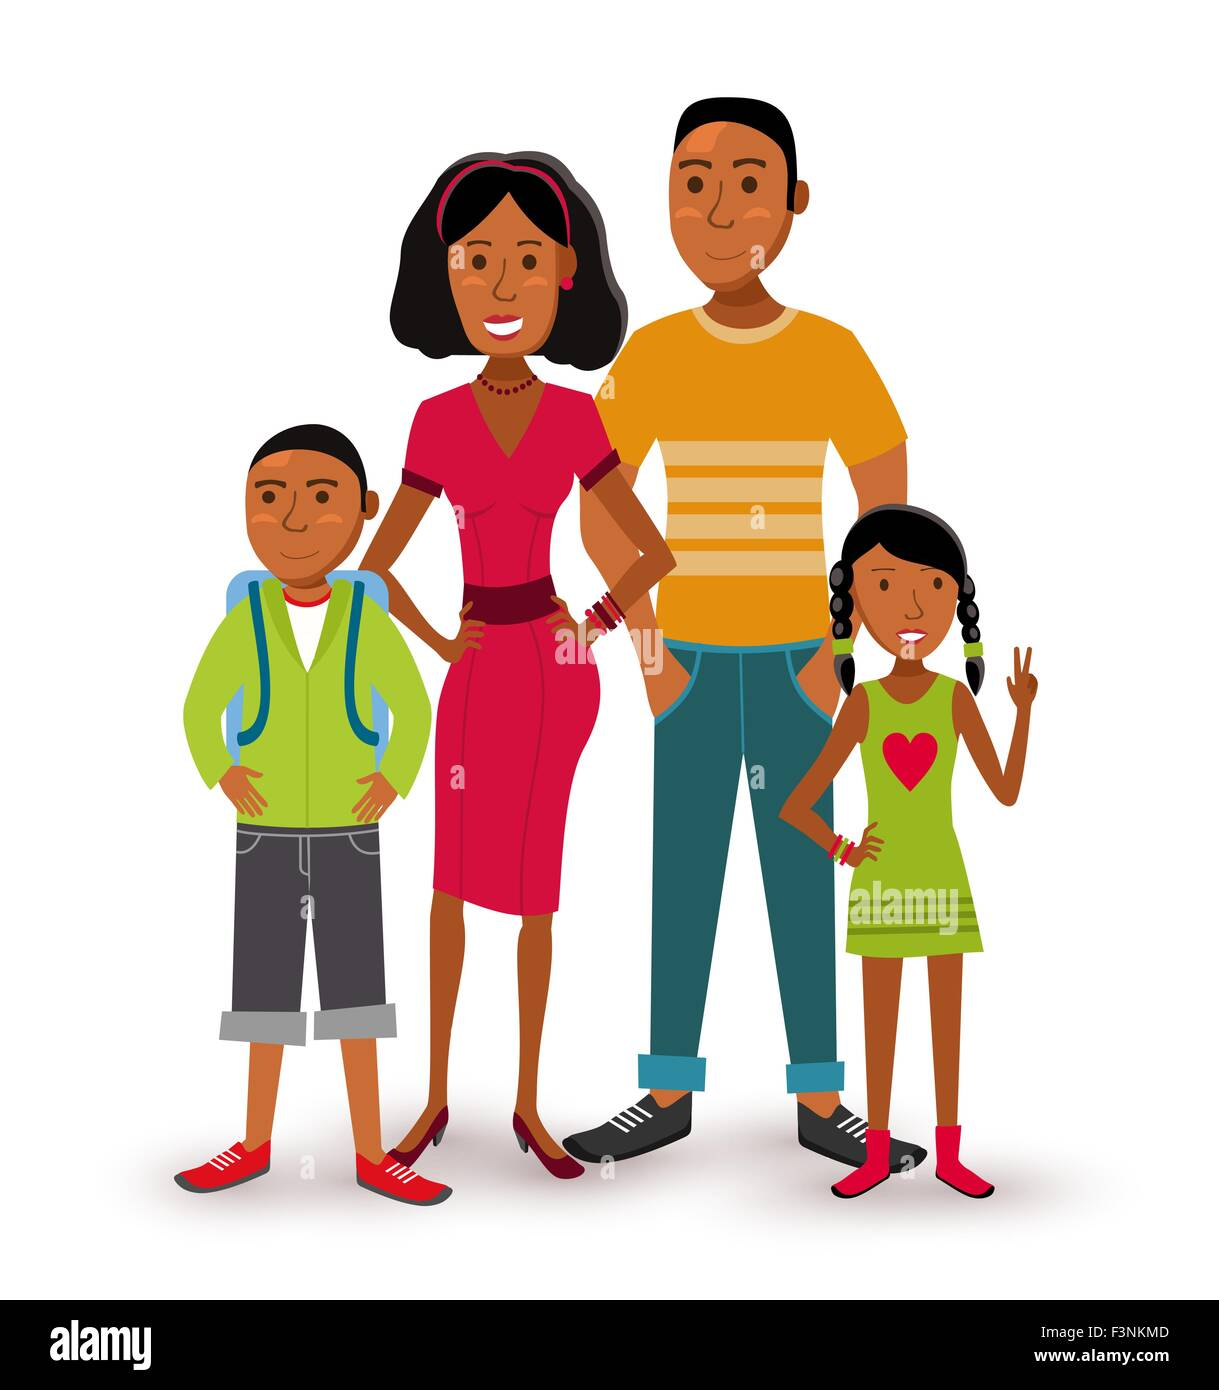 People Collection Nuclear Family Group Generation With